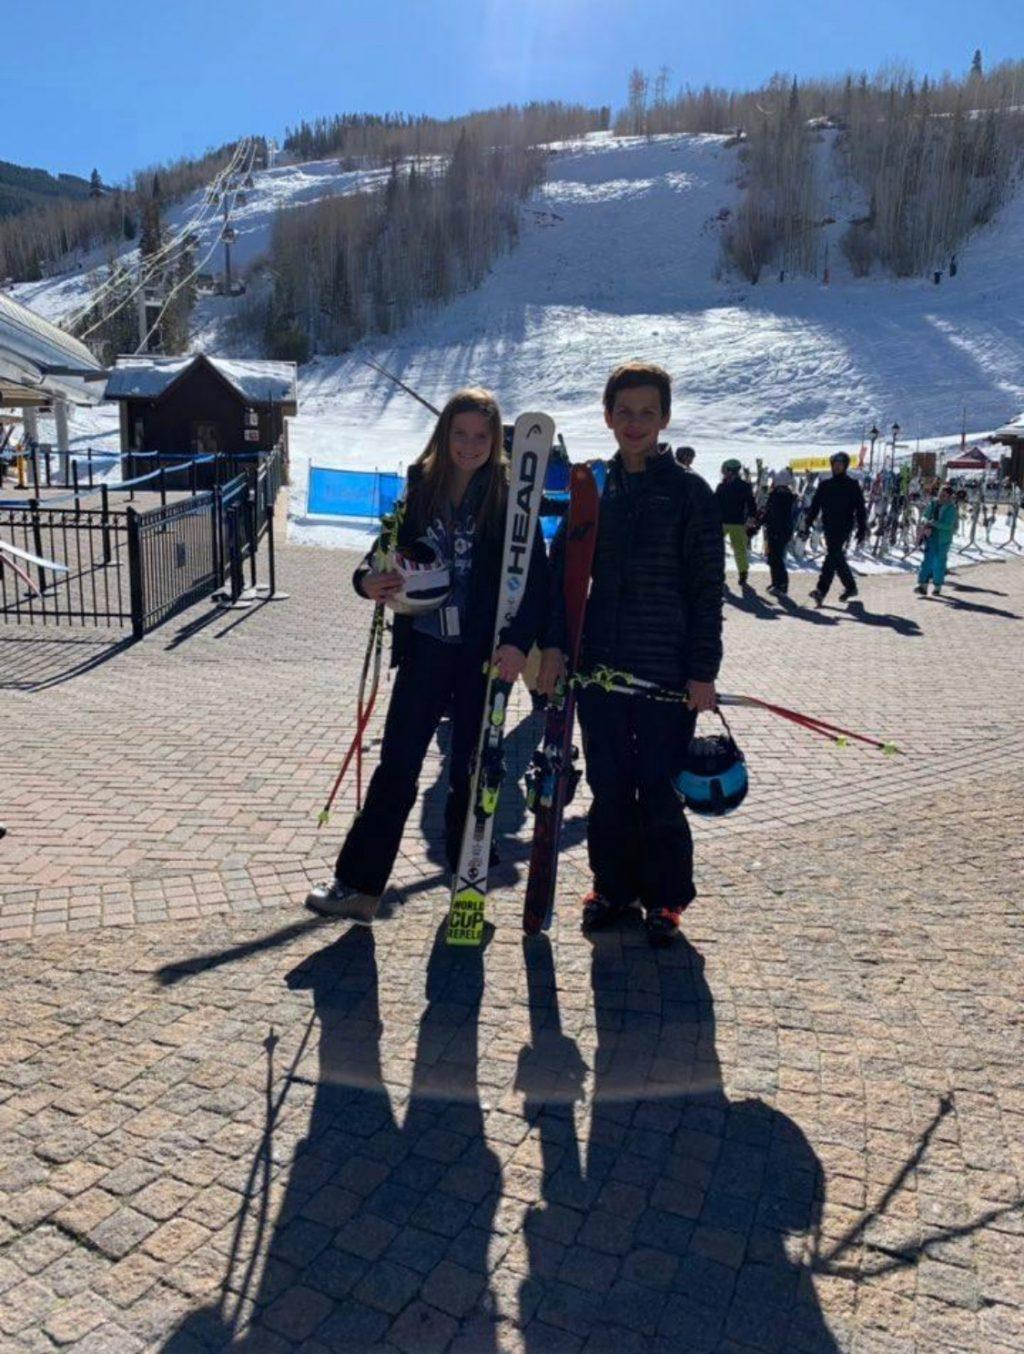 Cullen and her brother Blaine stand at the base of Vail, Colo. after a day of skiing in 2018. Cullen said she constantly skied all throughout middle school and continued a bit in high school.